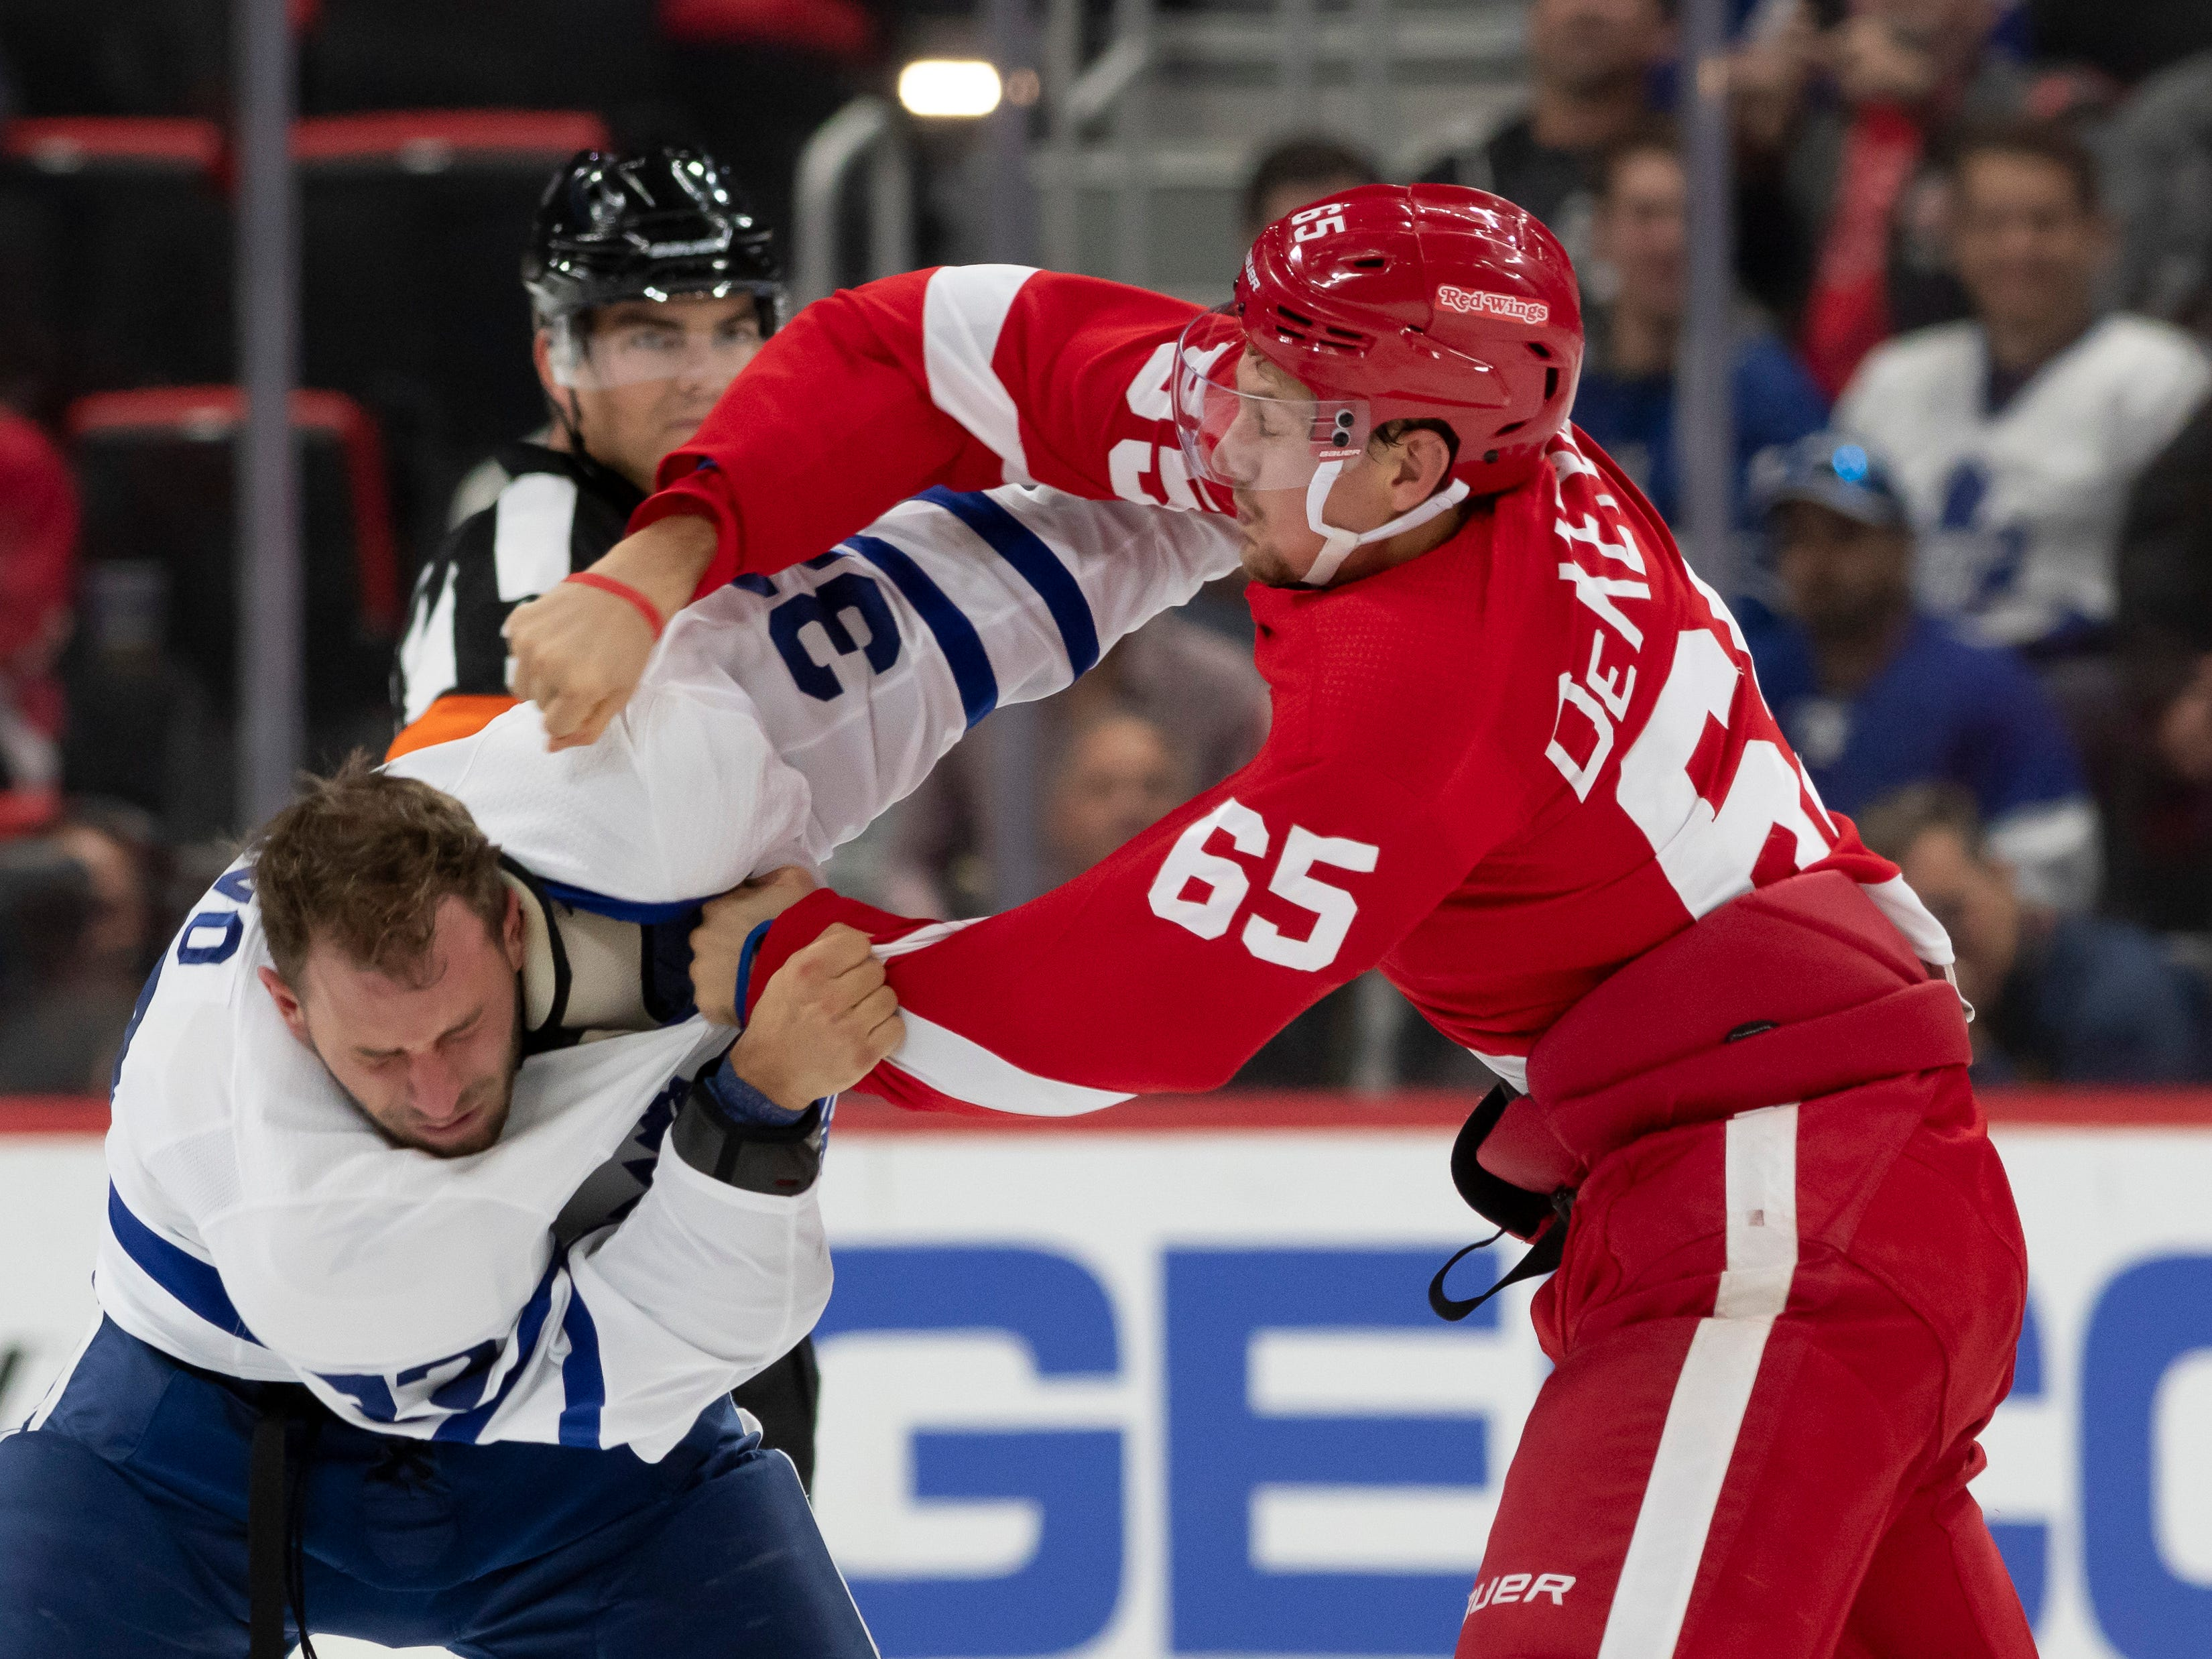 Detroit defenseman Danny DeKeyser and Toronto left wing Josh Leivo duke it out during a first period fight.